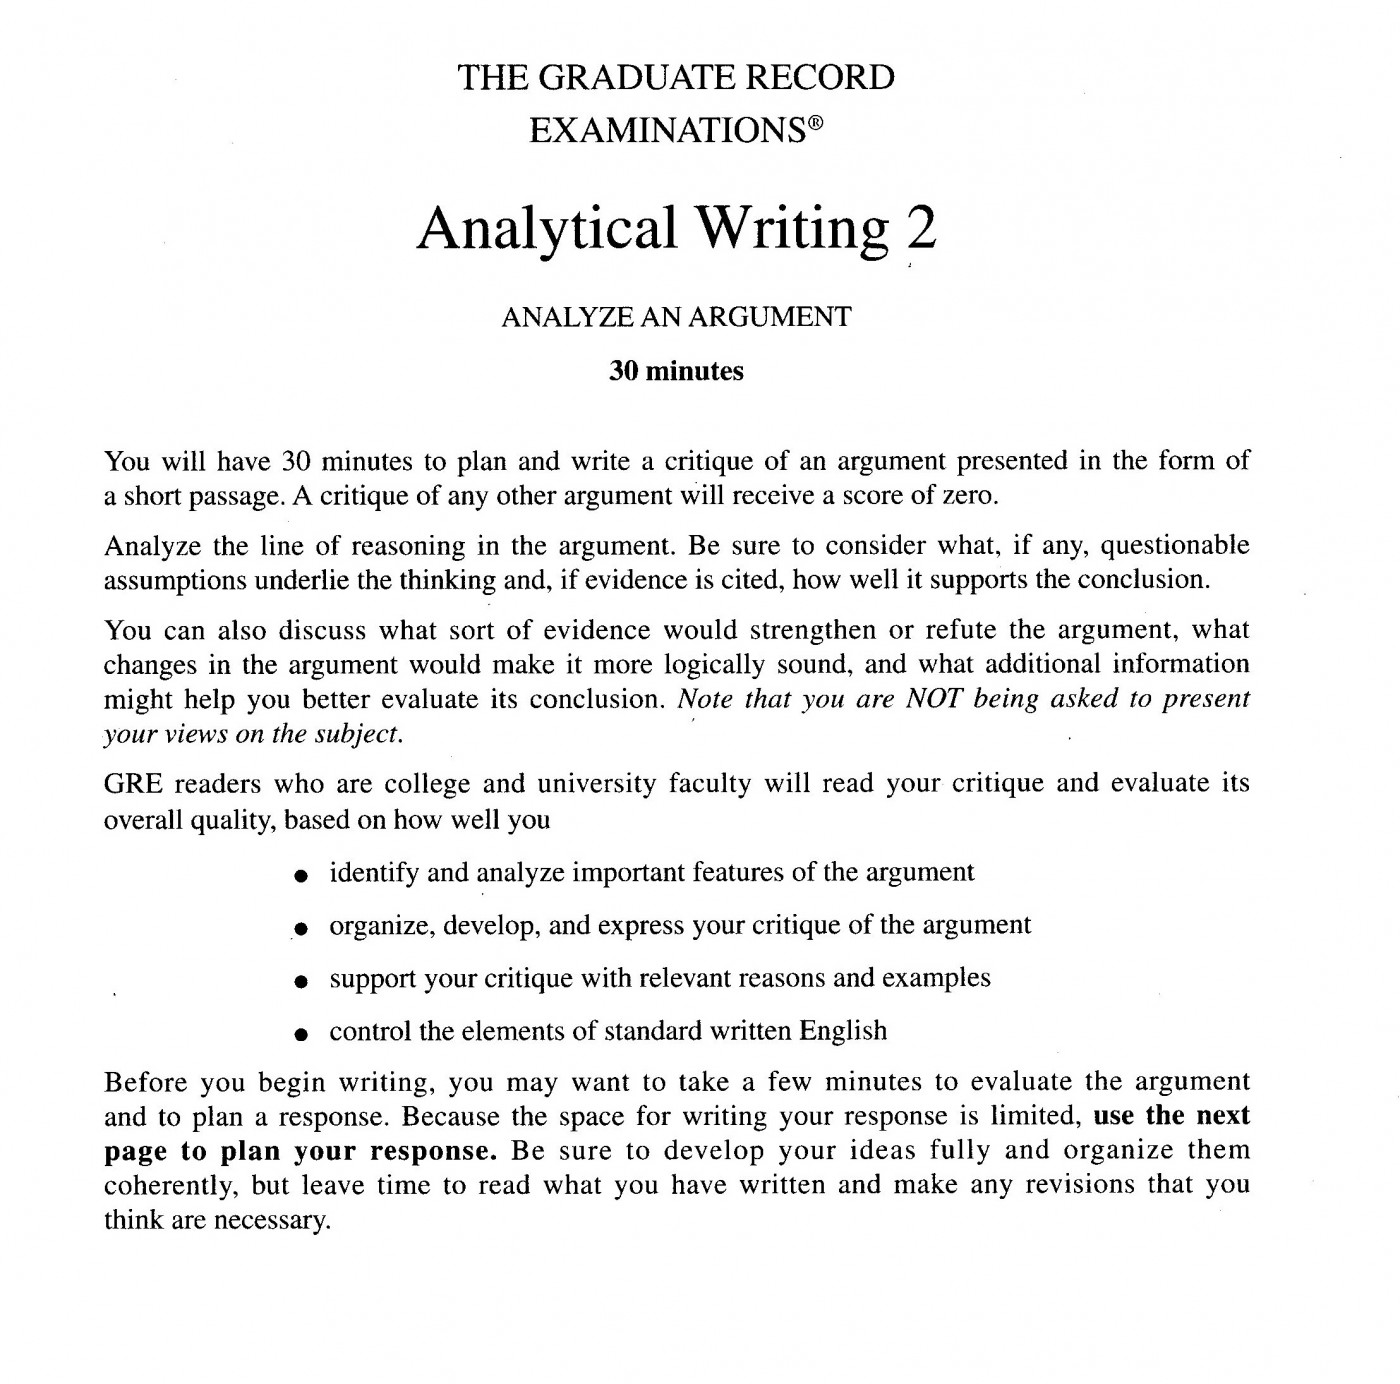 022 Analytical20writing20response20task20directions20for20gre201 Njhs Essay Conclusion Unique 1400